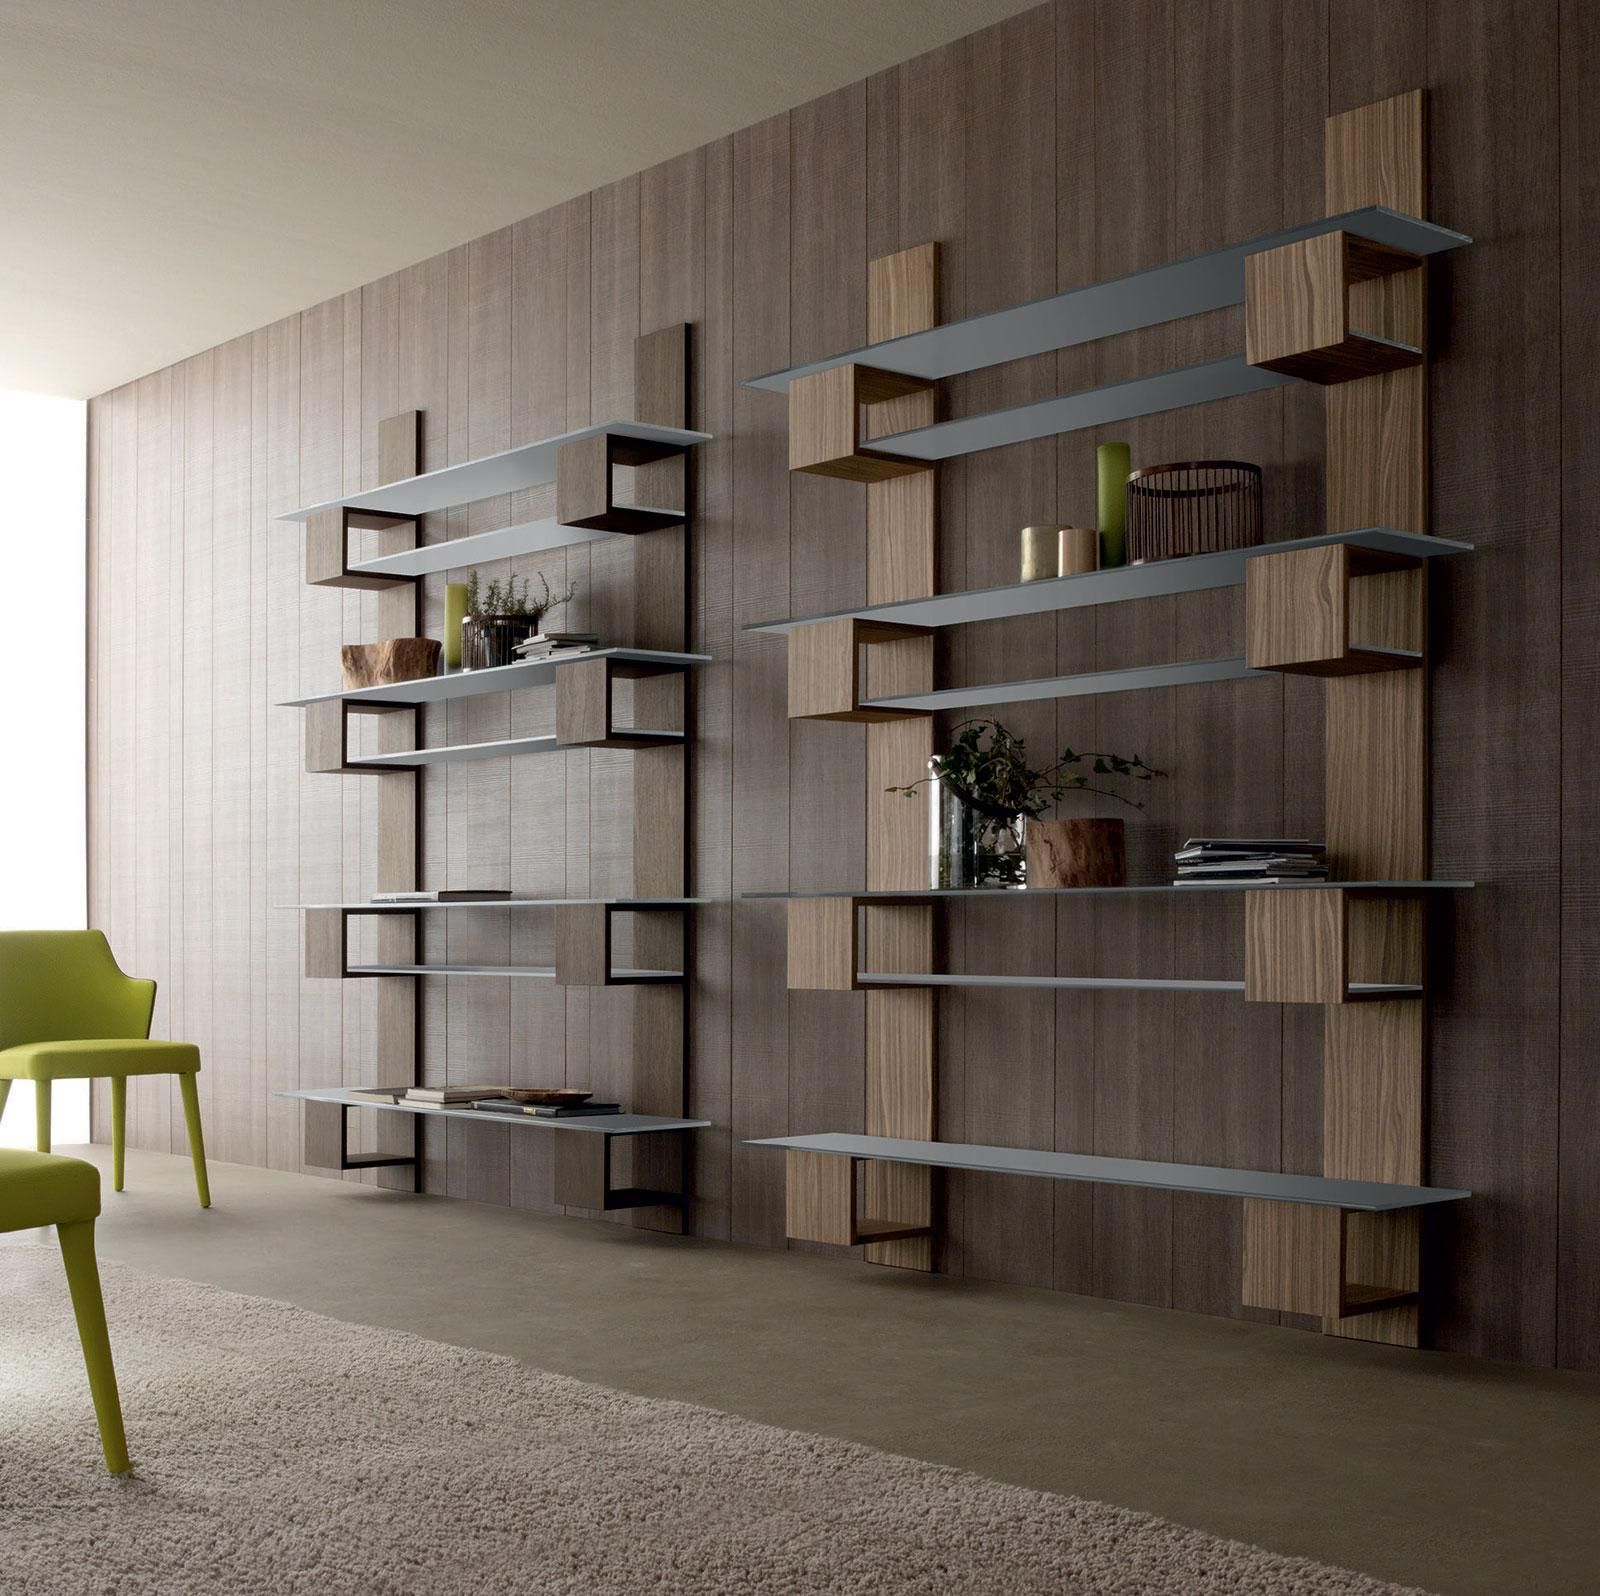 your stylish vertical decor pile in bookcase rainaldi furniture with heavy popular a that home the organizer books of and bookcases sapien ensure designs strength designed decoration design cover for adorable base by shelves bruno stability